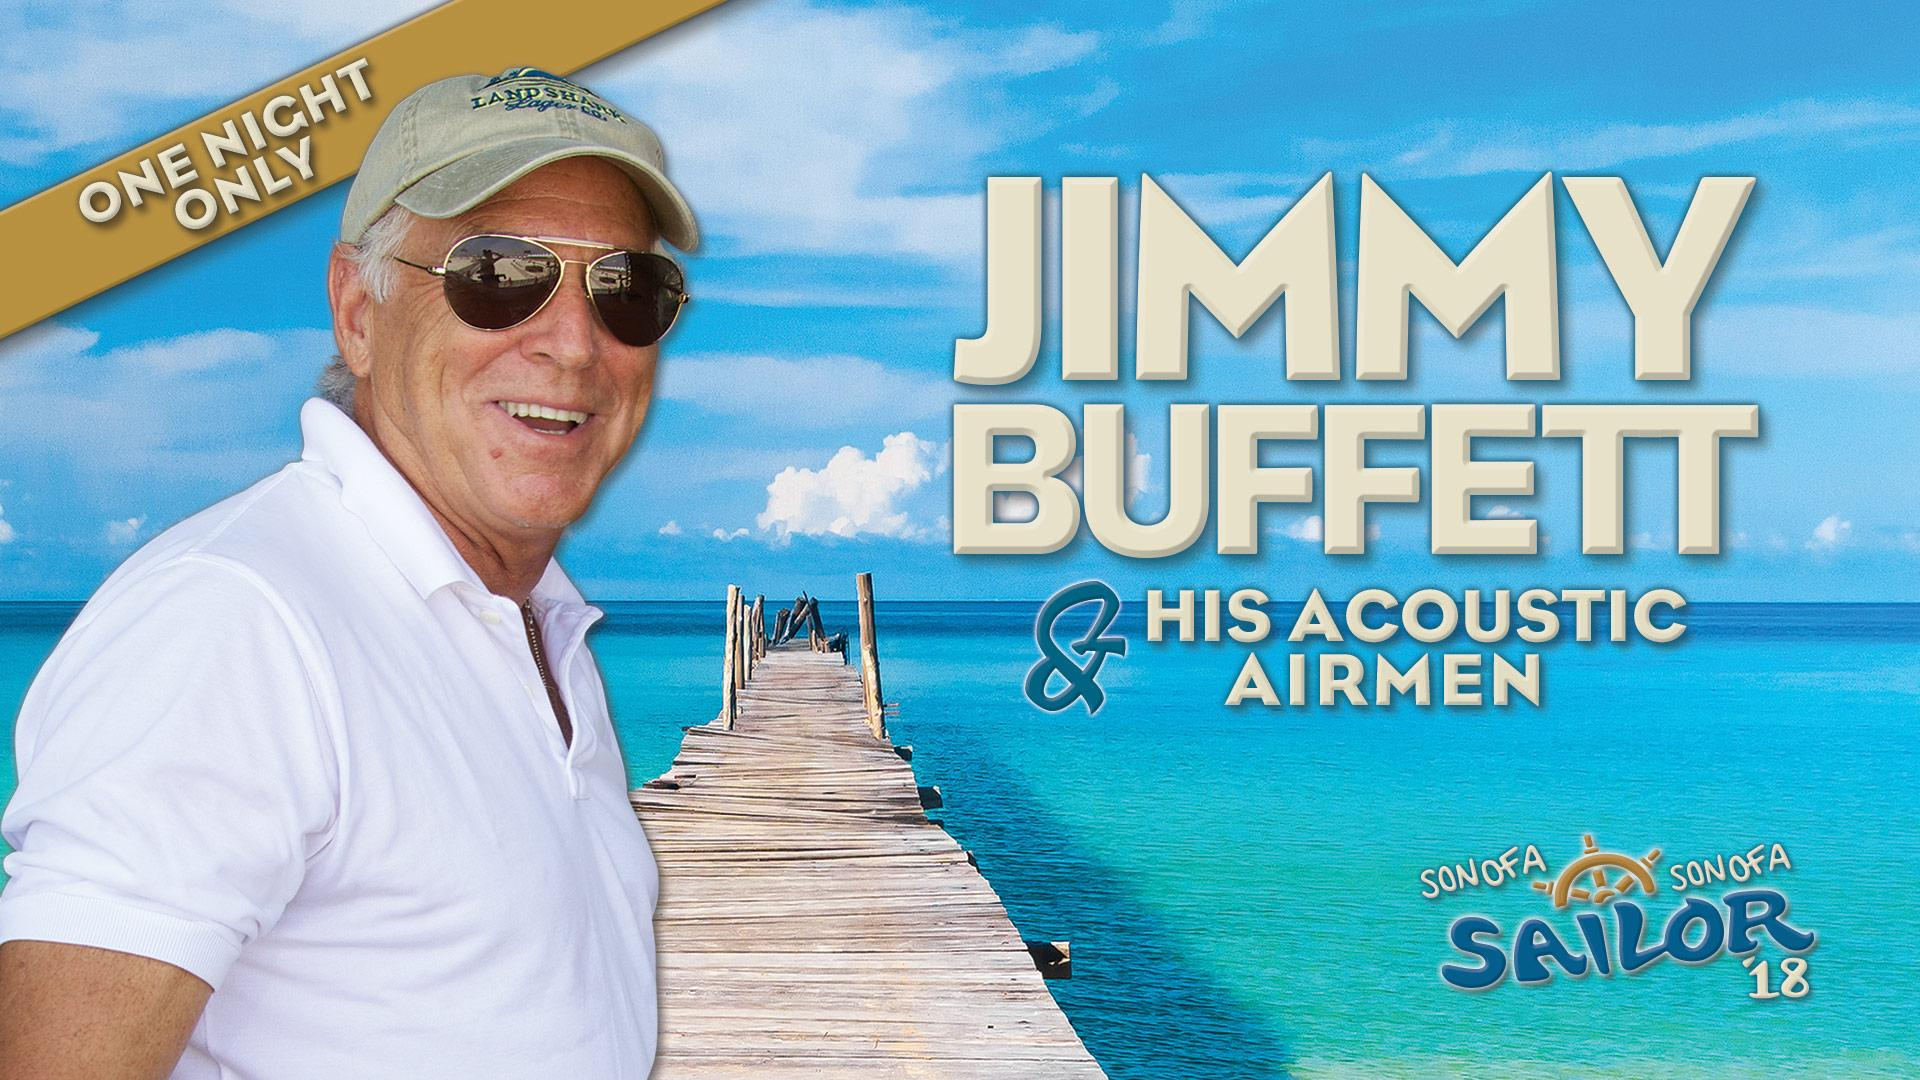 Jimmy Buffett and the Acoustic Airmen to Perform in Hattiesburg ...